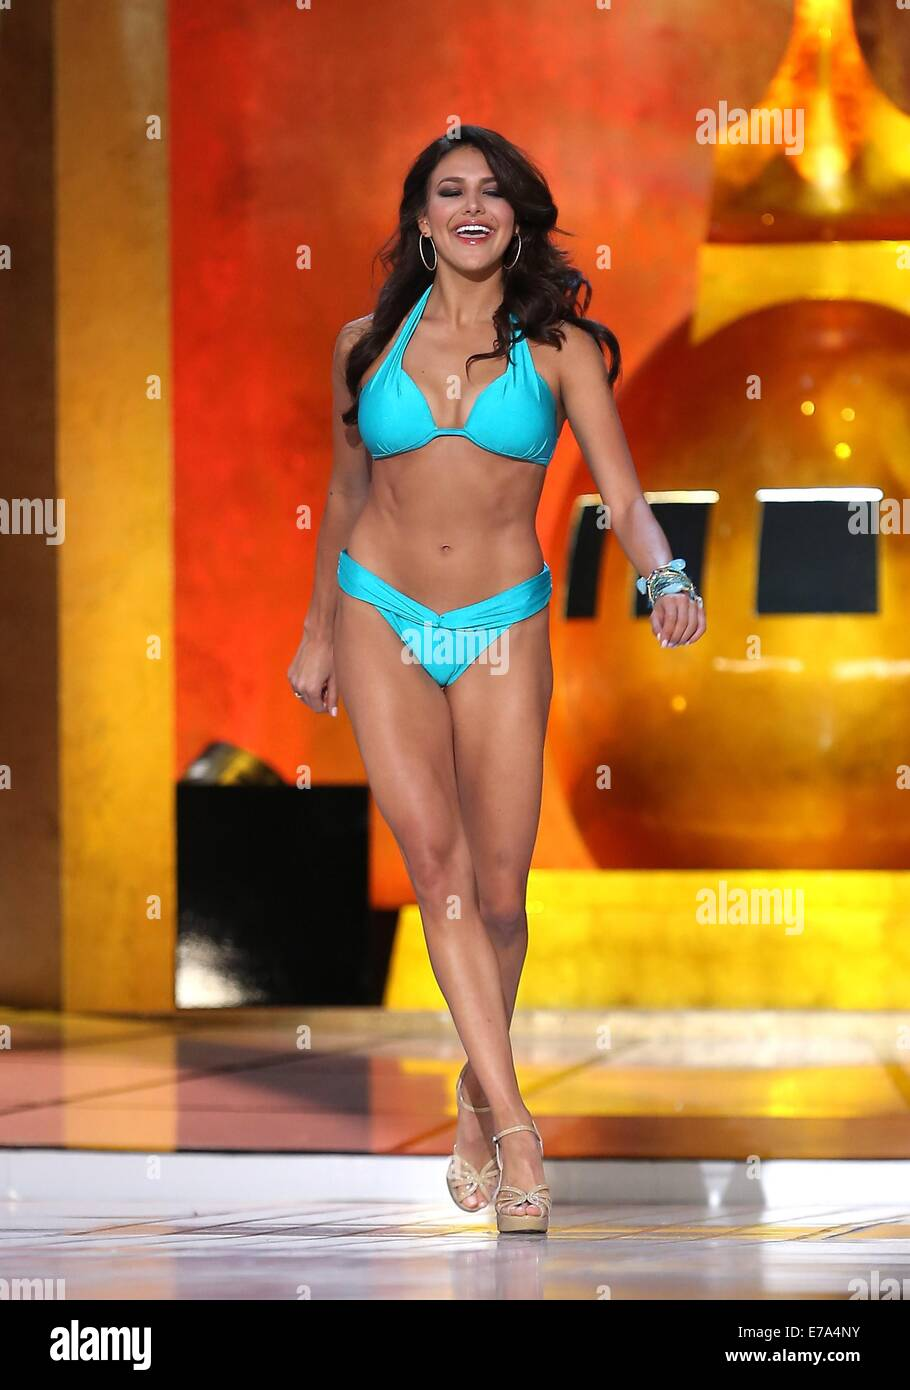 Atlantic City, NJ, USA. 10th Sep, 2014. Miss Alabama, Caitlin Brunell in attendance for 2015 Miss America Competition - Stock Image